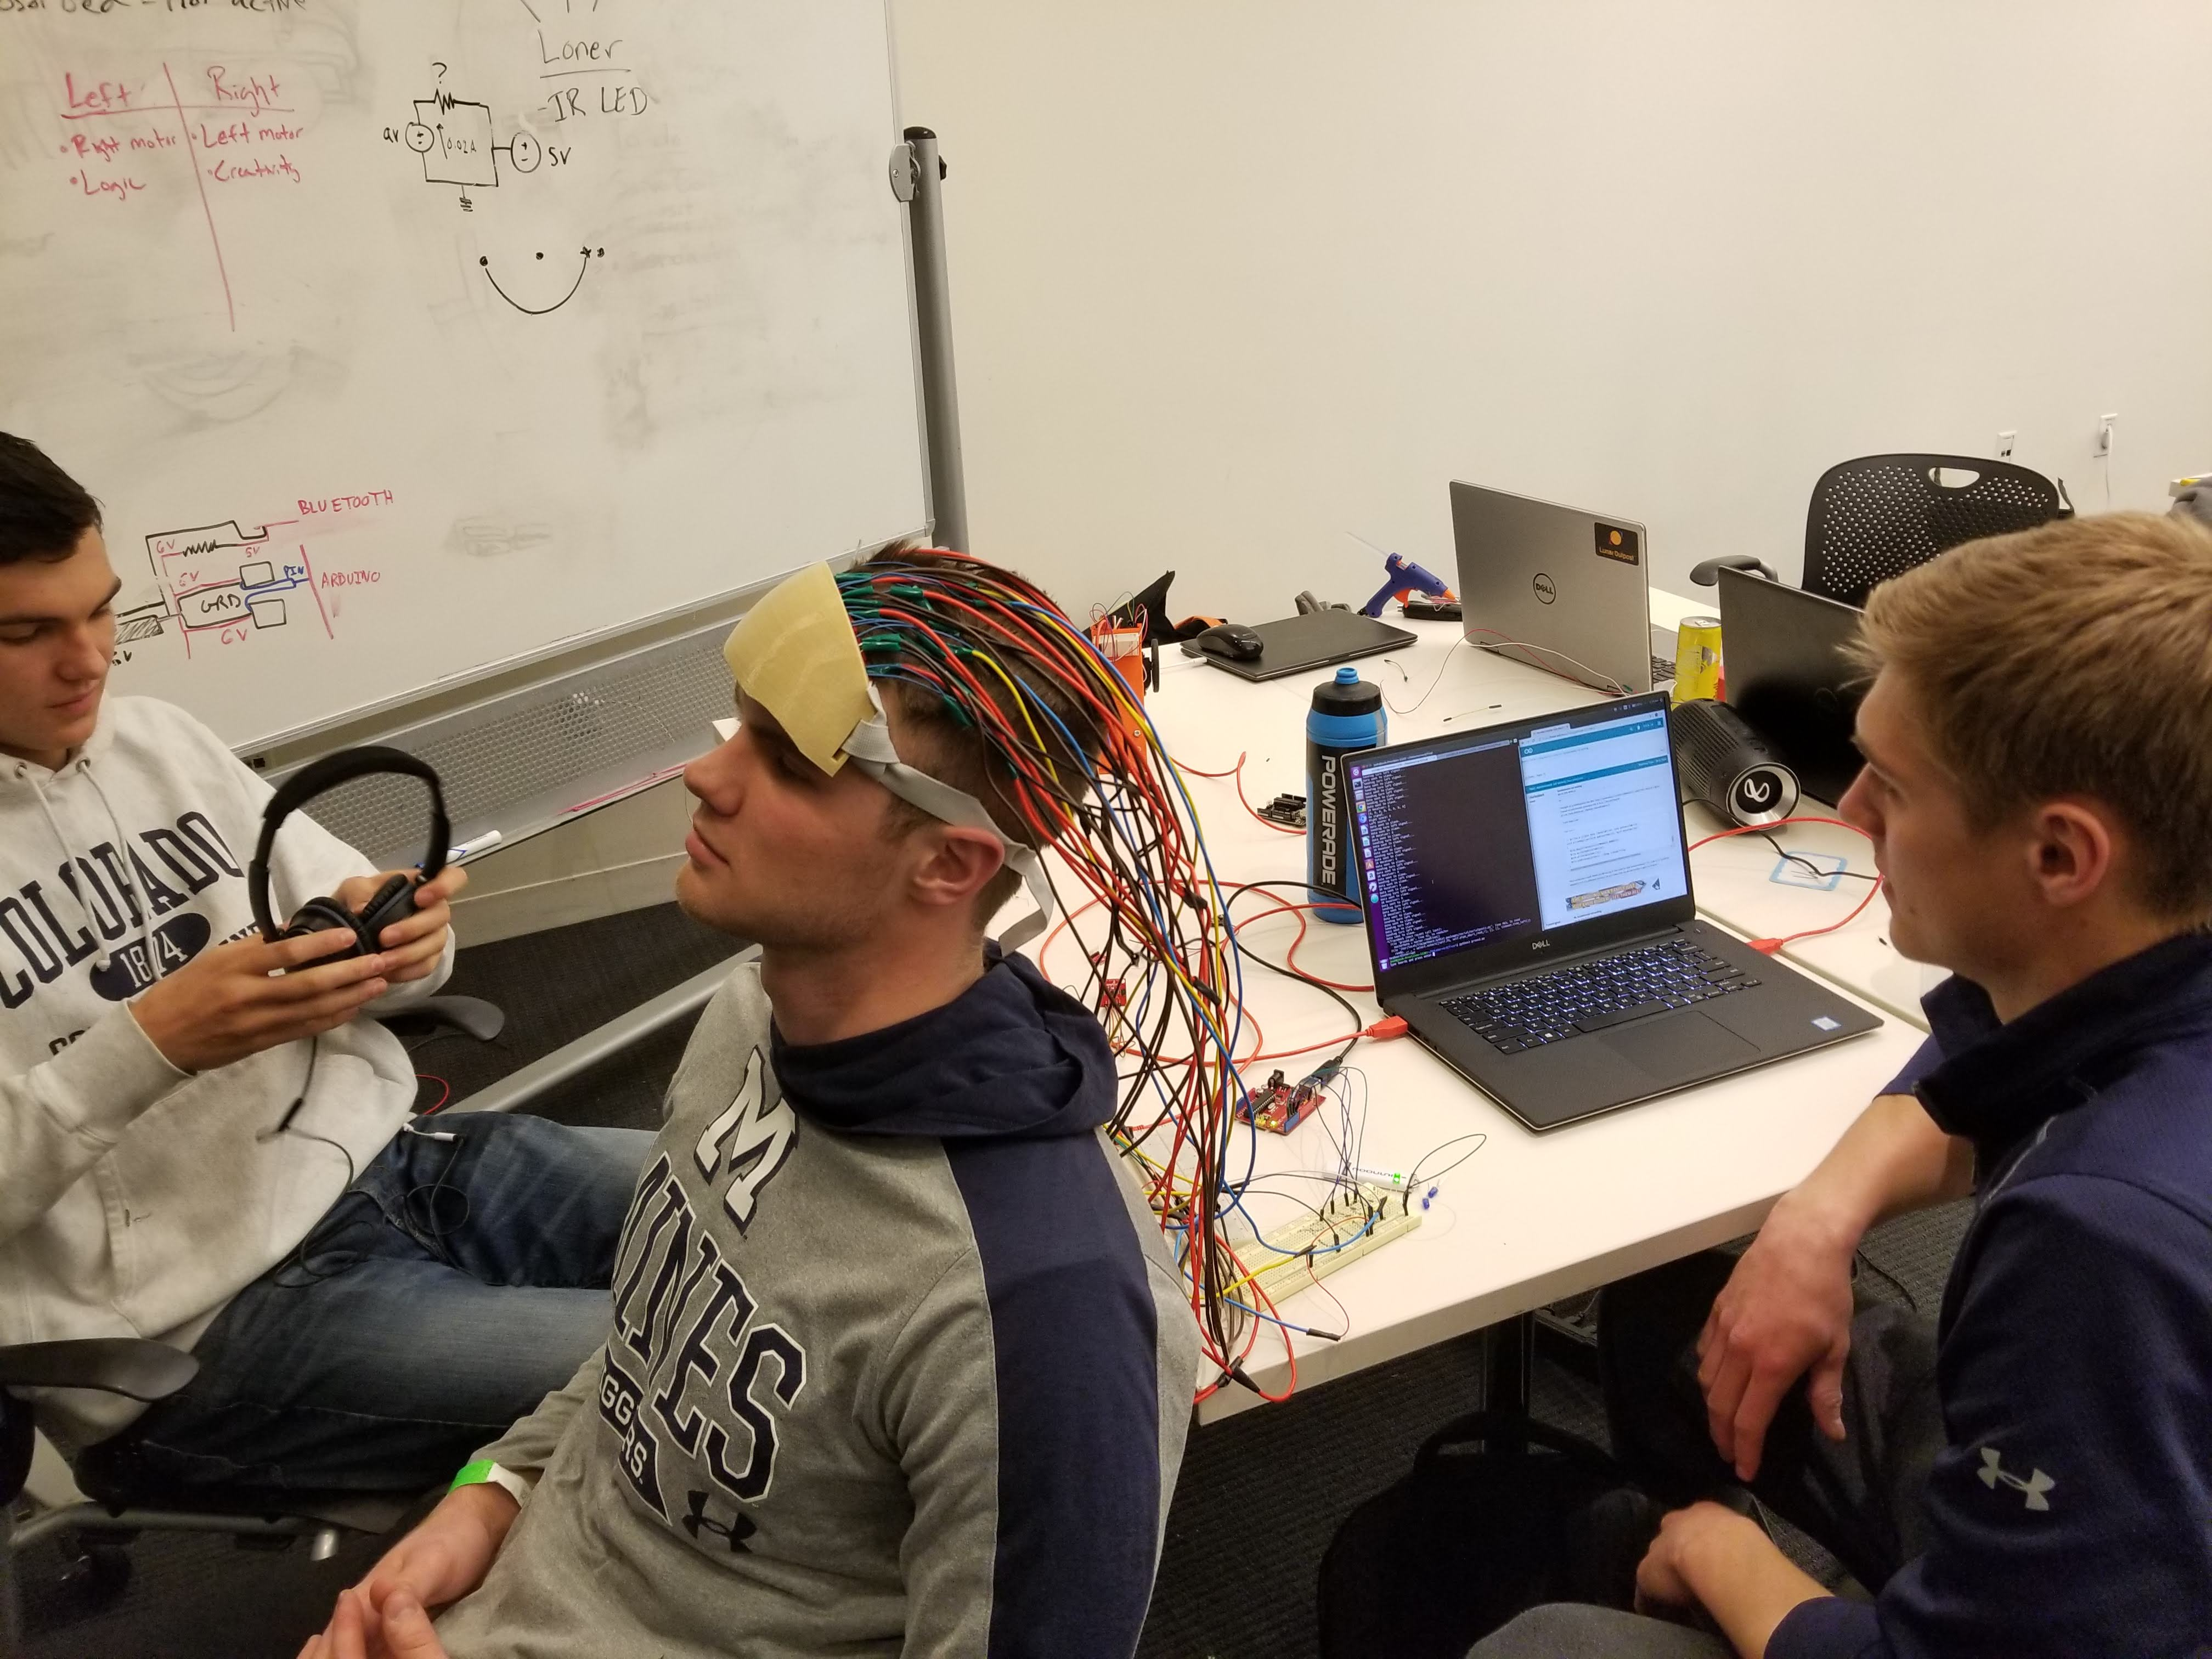 BrainAble team members work on the headset that detects brain activity.